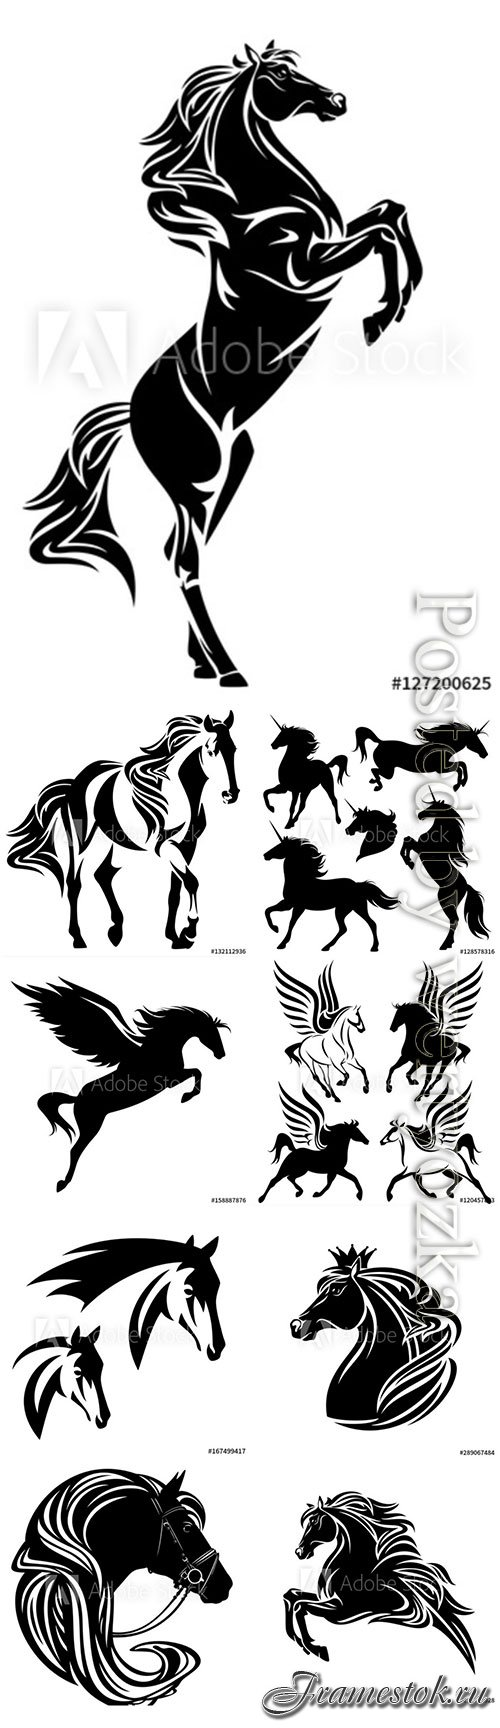 Horses, unicorns and pegasuses in vector